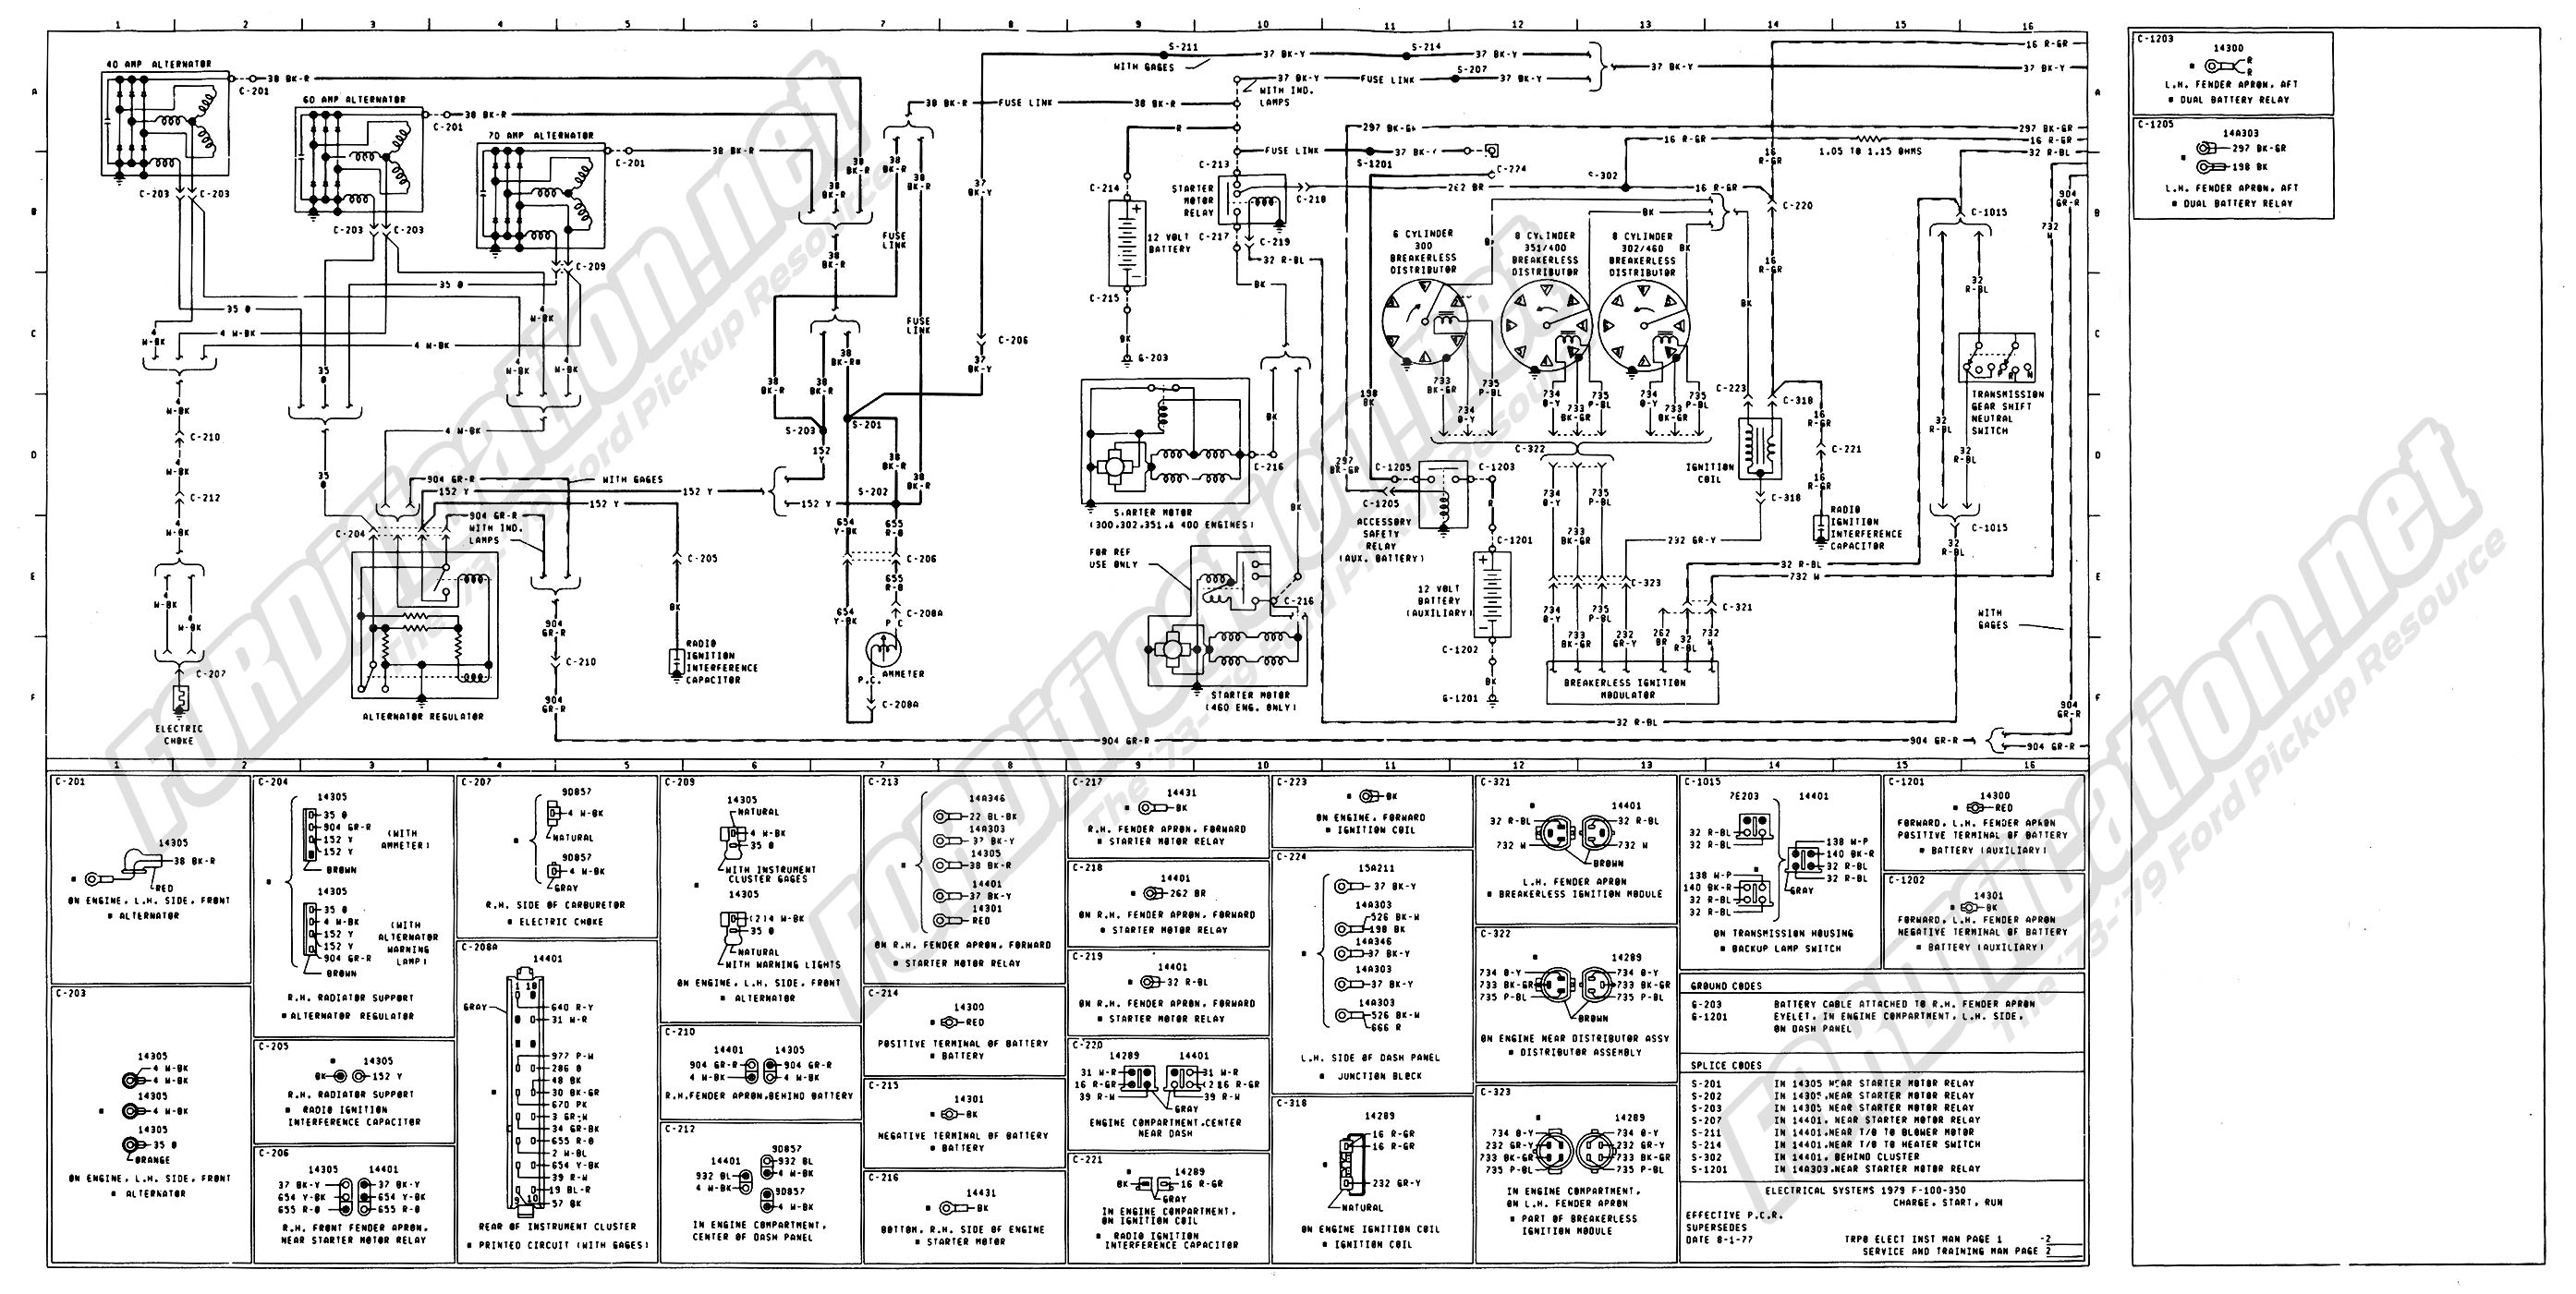 Wiring Diagram For Ford F150 from www.fordification.net